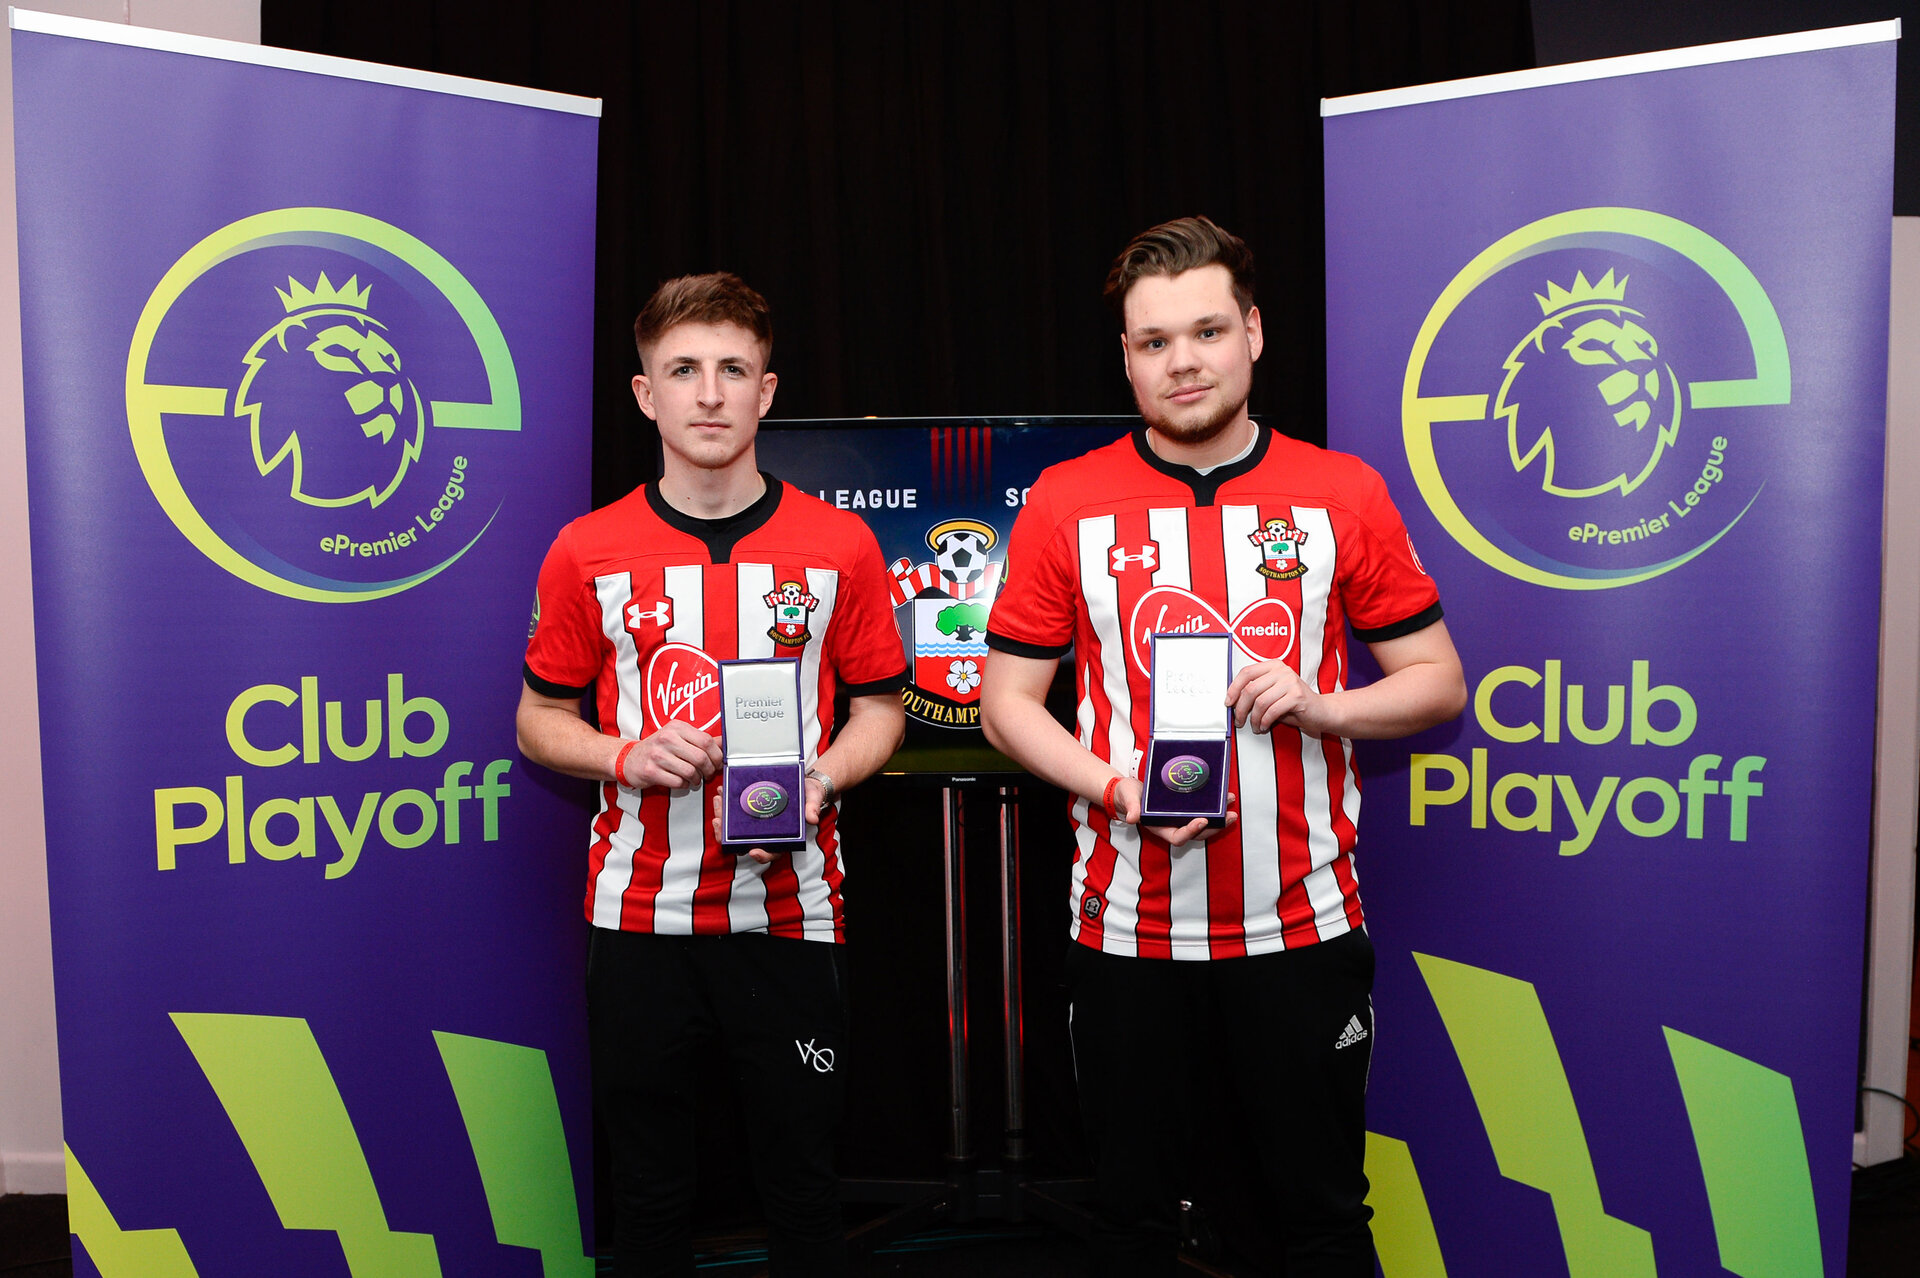 SOUTHAMPTON, ENGLAND - FEBRUARY 14: LtoR Gamer Tag 'LP Rusher X ' winner of the Xbox tournament with 'Venn' winner of the PS4 Tournament for Southampton FC pictured for the ePremier League tournament held at St Mary's Stadium on February 14, 2019 in Southampton, England. (Photo by James Bridle - Southampton FC/Southampton FC via Getty Images)